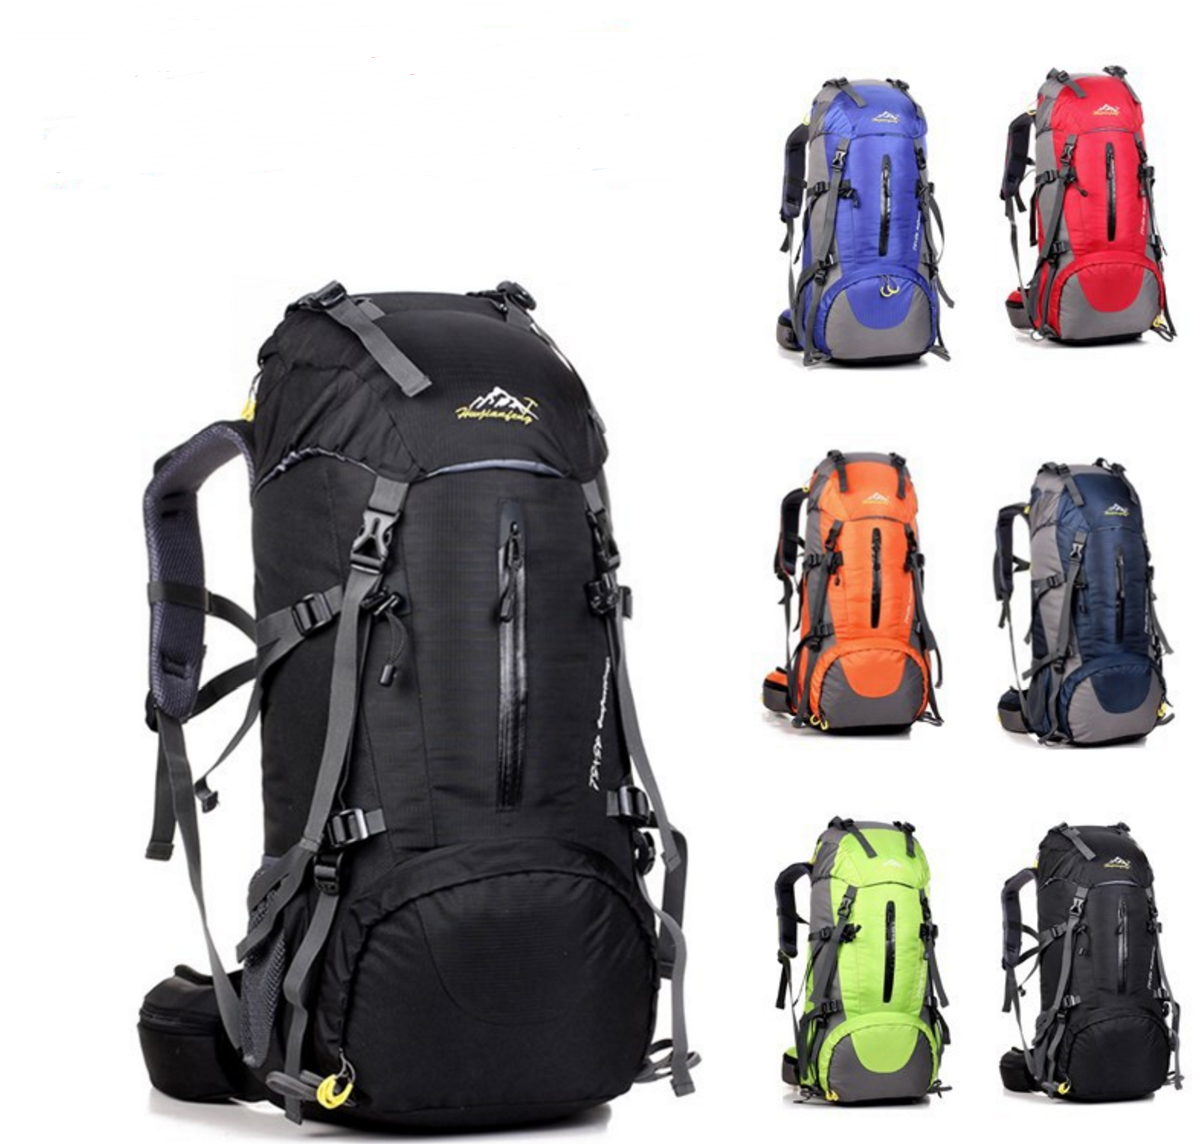 Large 40L Lightweight Water Resistant Travel Backpack/foldable & Packable Hiking Daypack